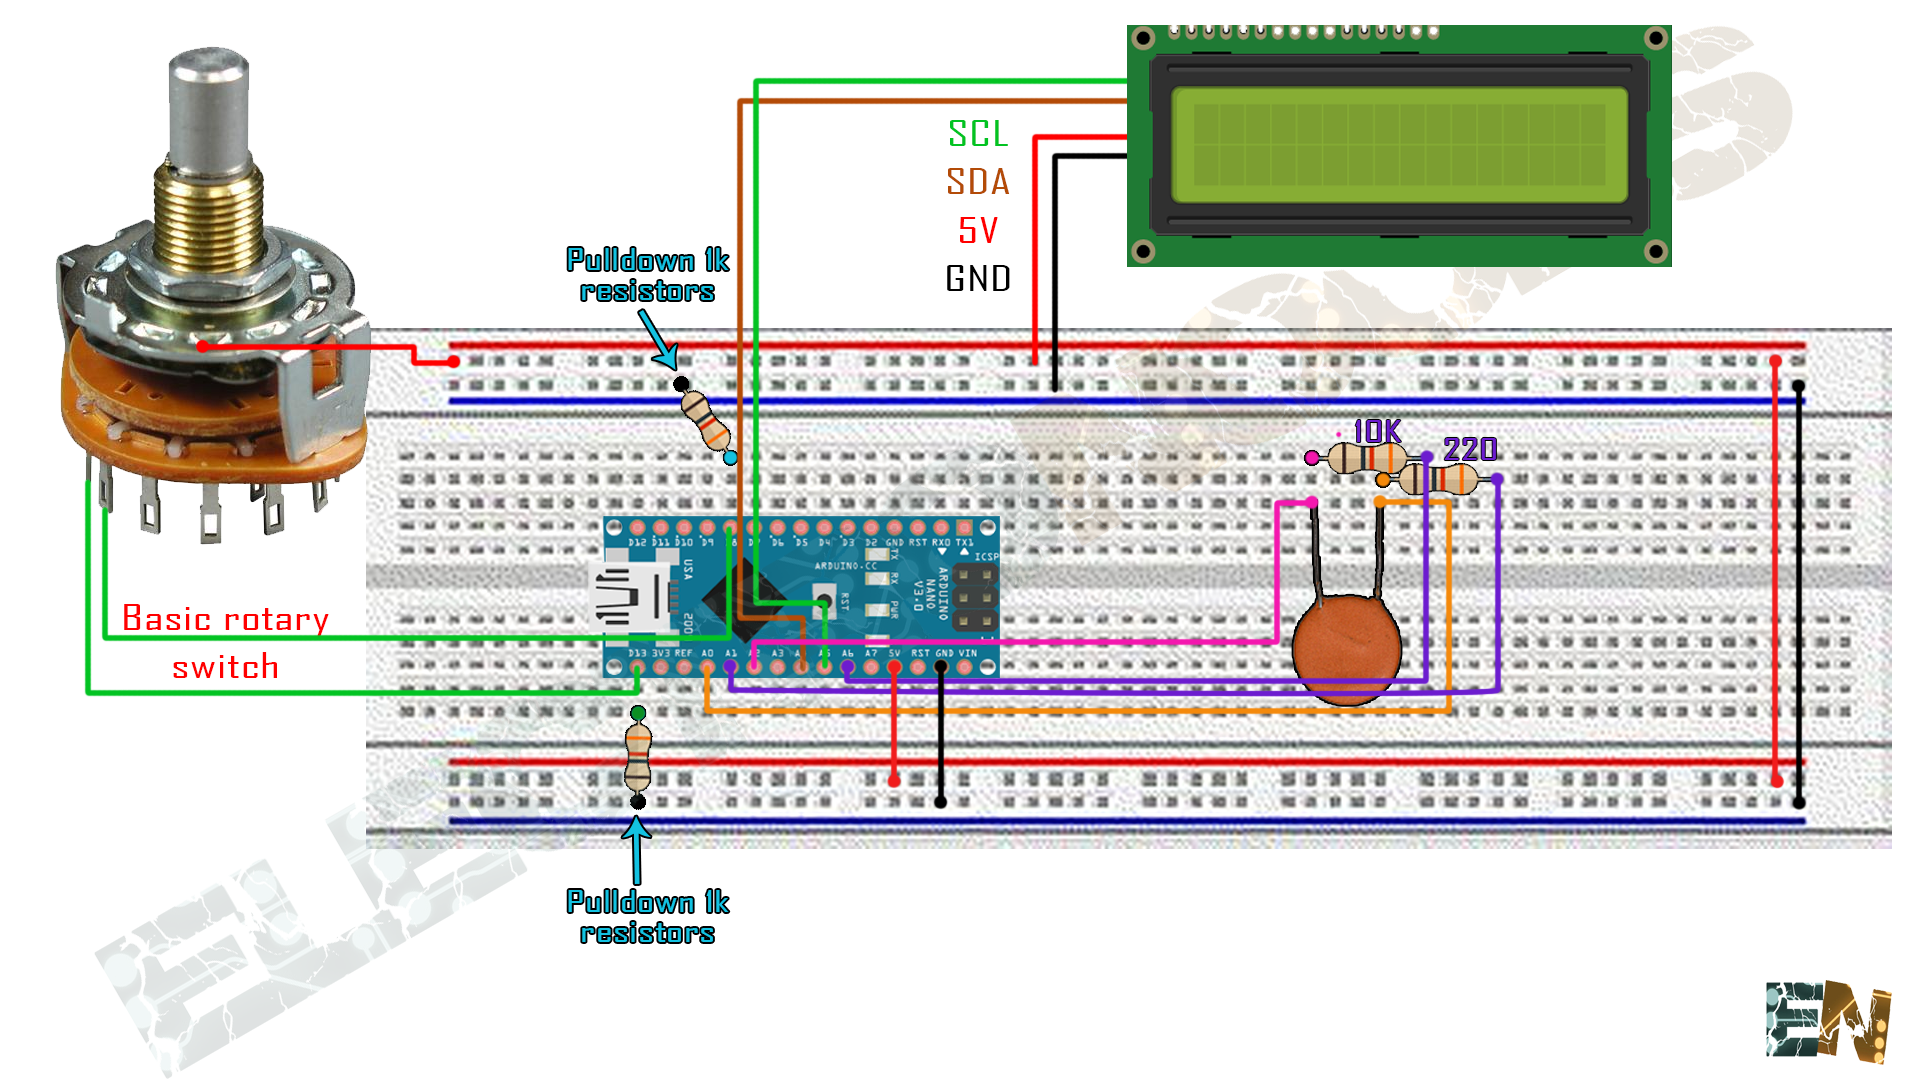 Capacitance Meter Schematic Trusted Wiring Diagram 8085 Projects Blog Archive A Digital Timer Circuit Using Ne555 How To Make Arduino 555